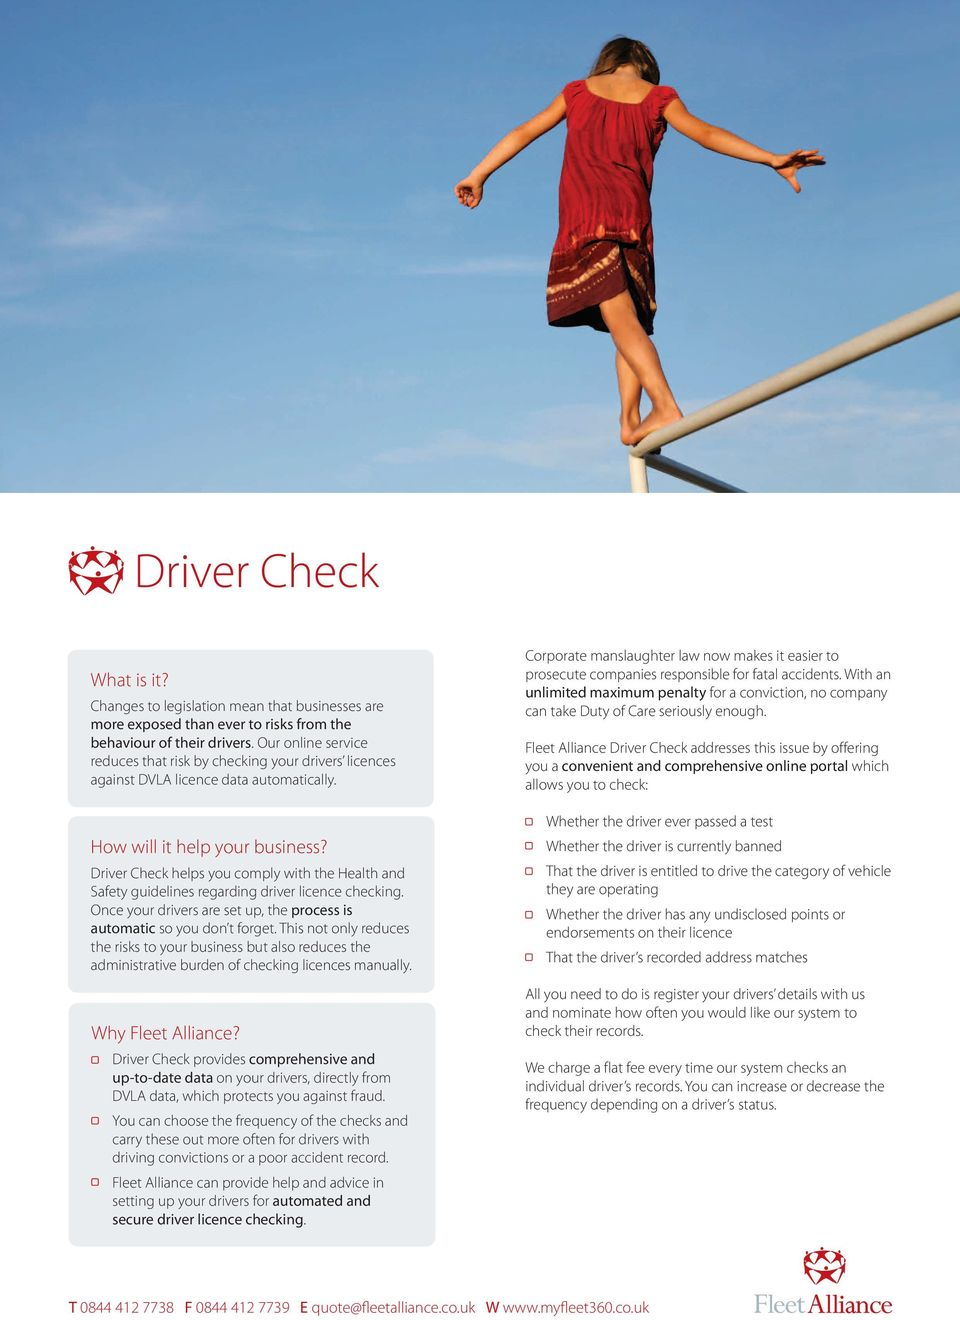 Driver Check helps you comply with the Health and Safety guidelines regarding driver licence checking. Once your drivers are set up, the process is automatic so you don t forget.